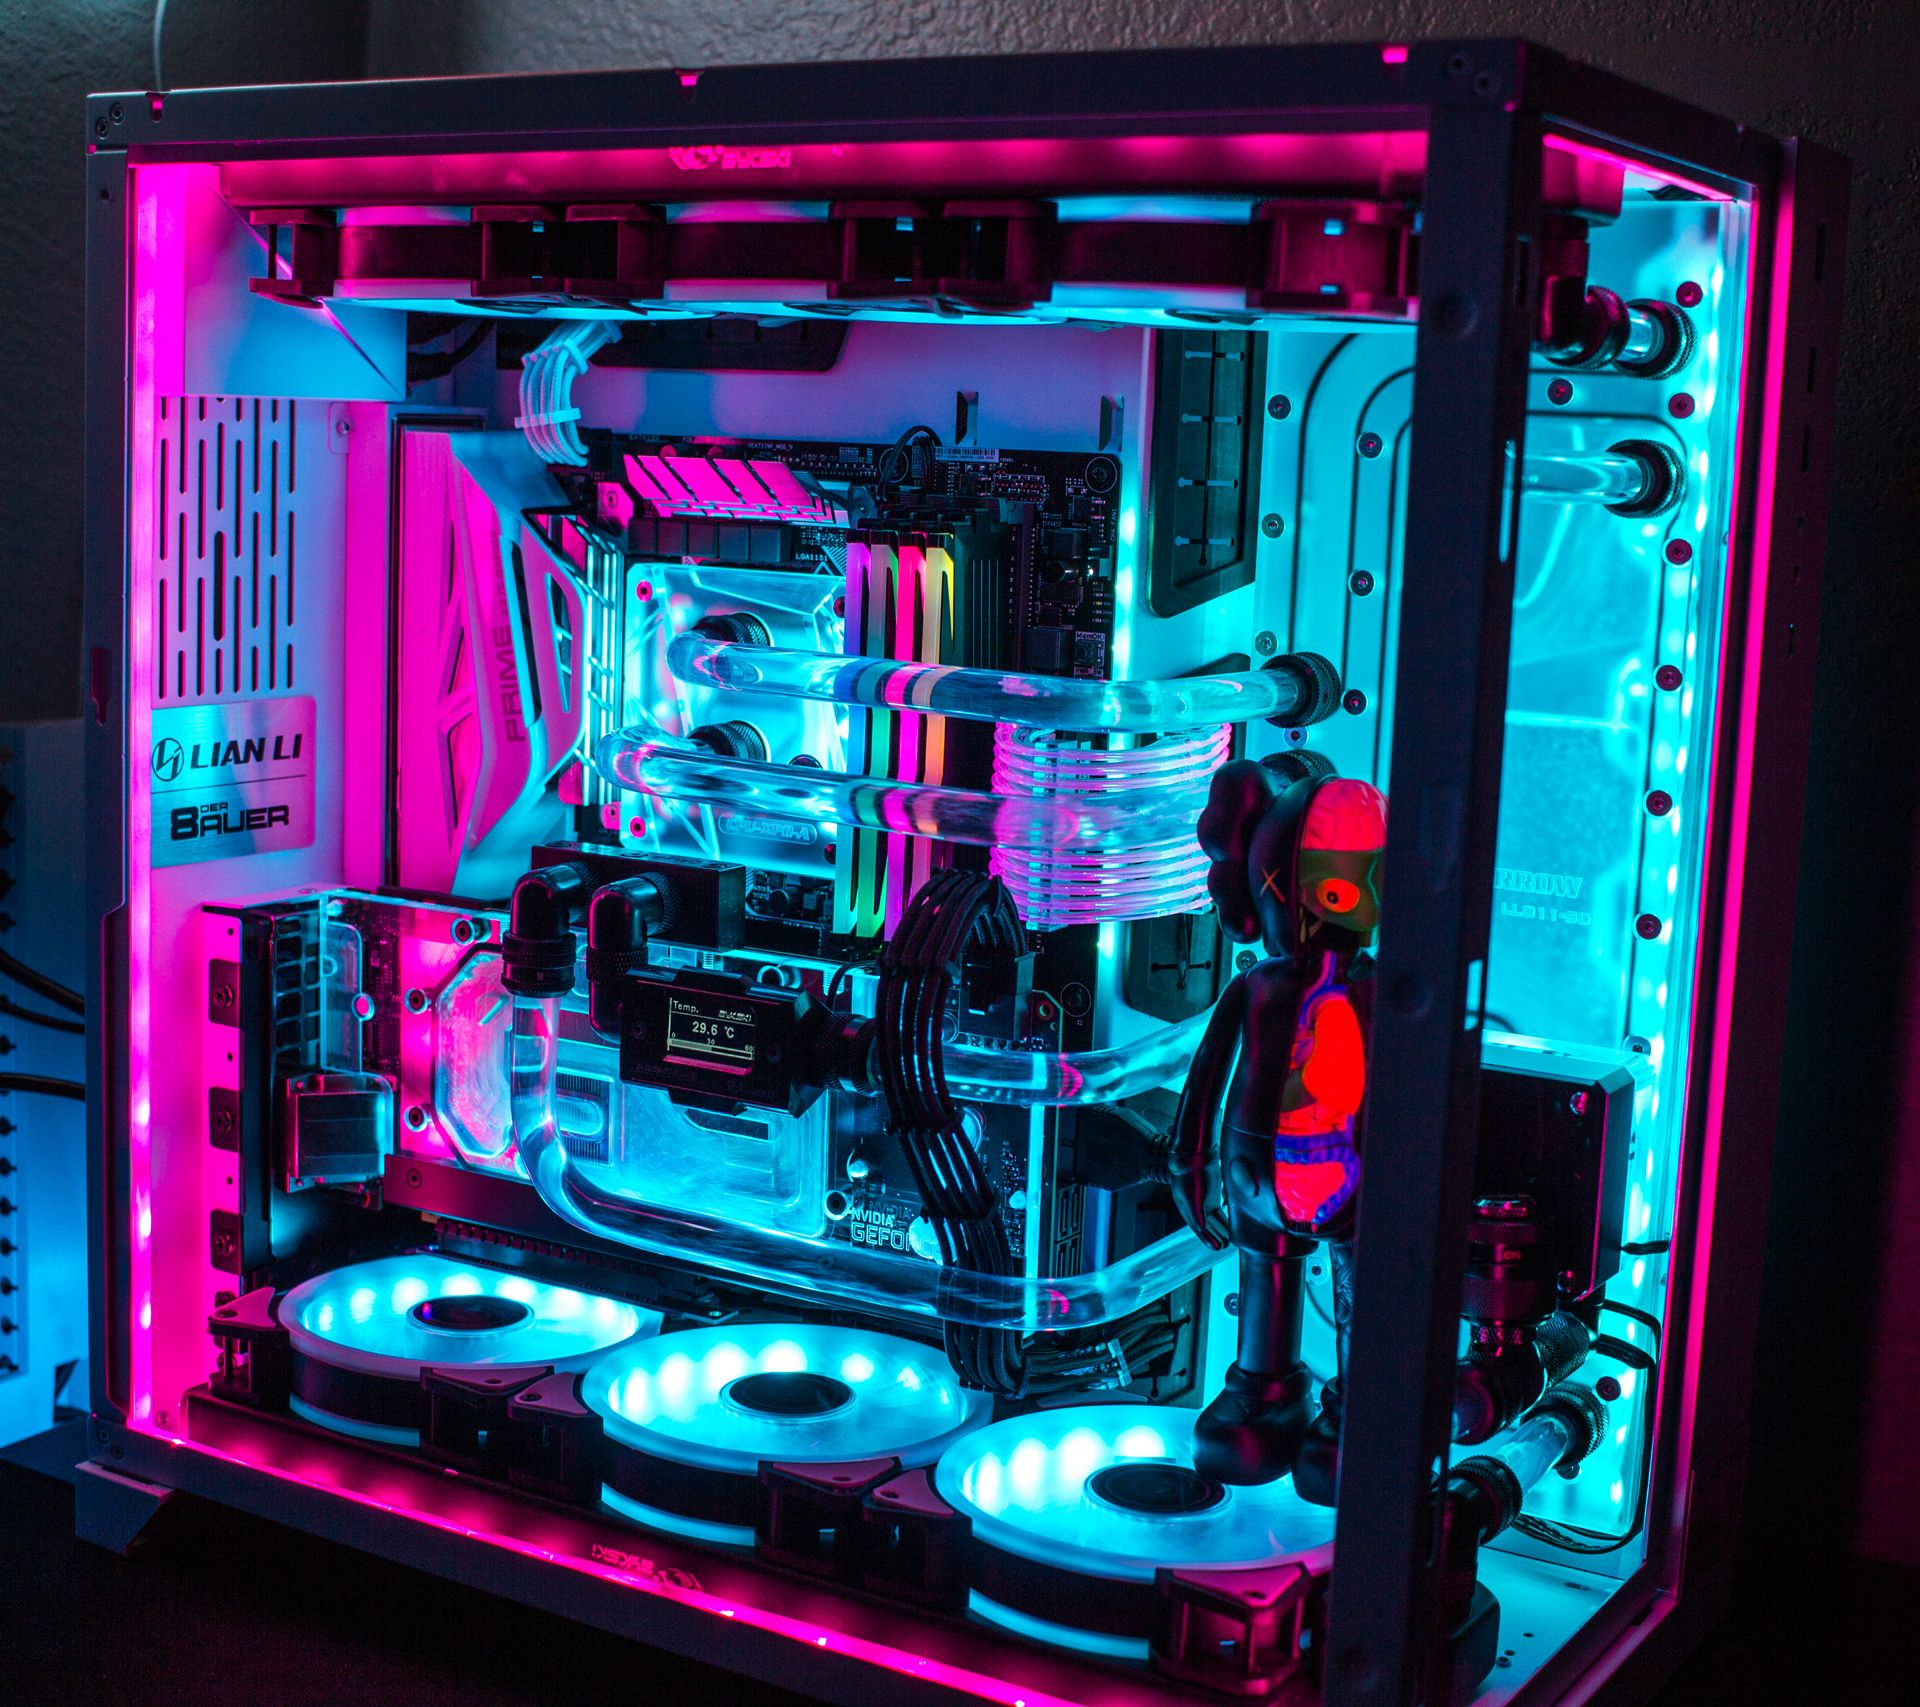 Pin On All Things Pc Pc case neon modding hd wallpaper